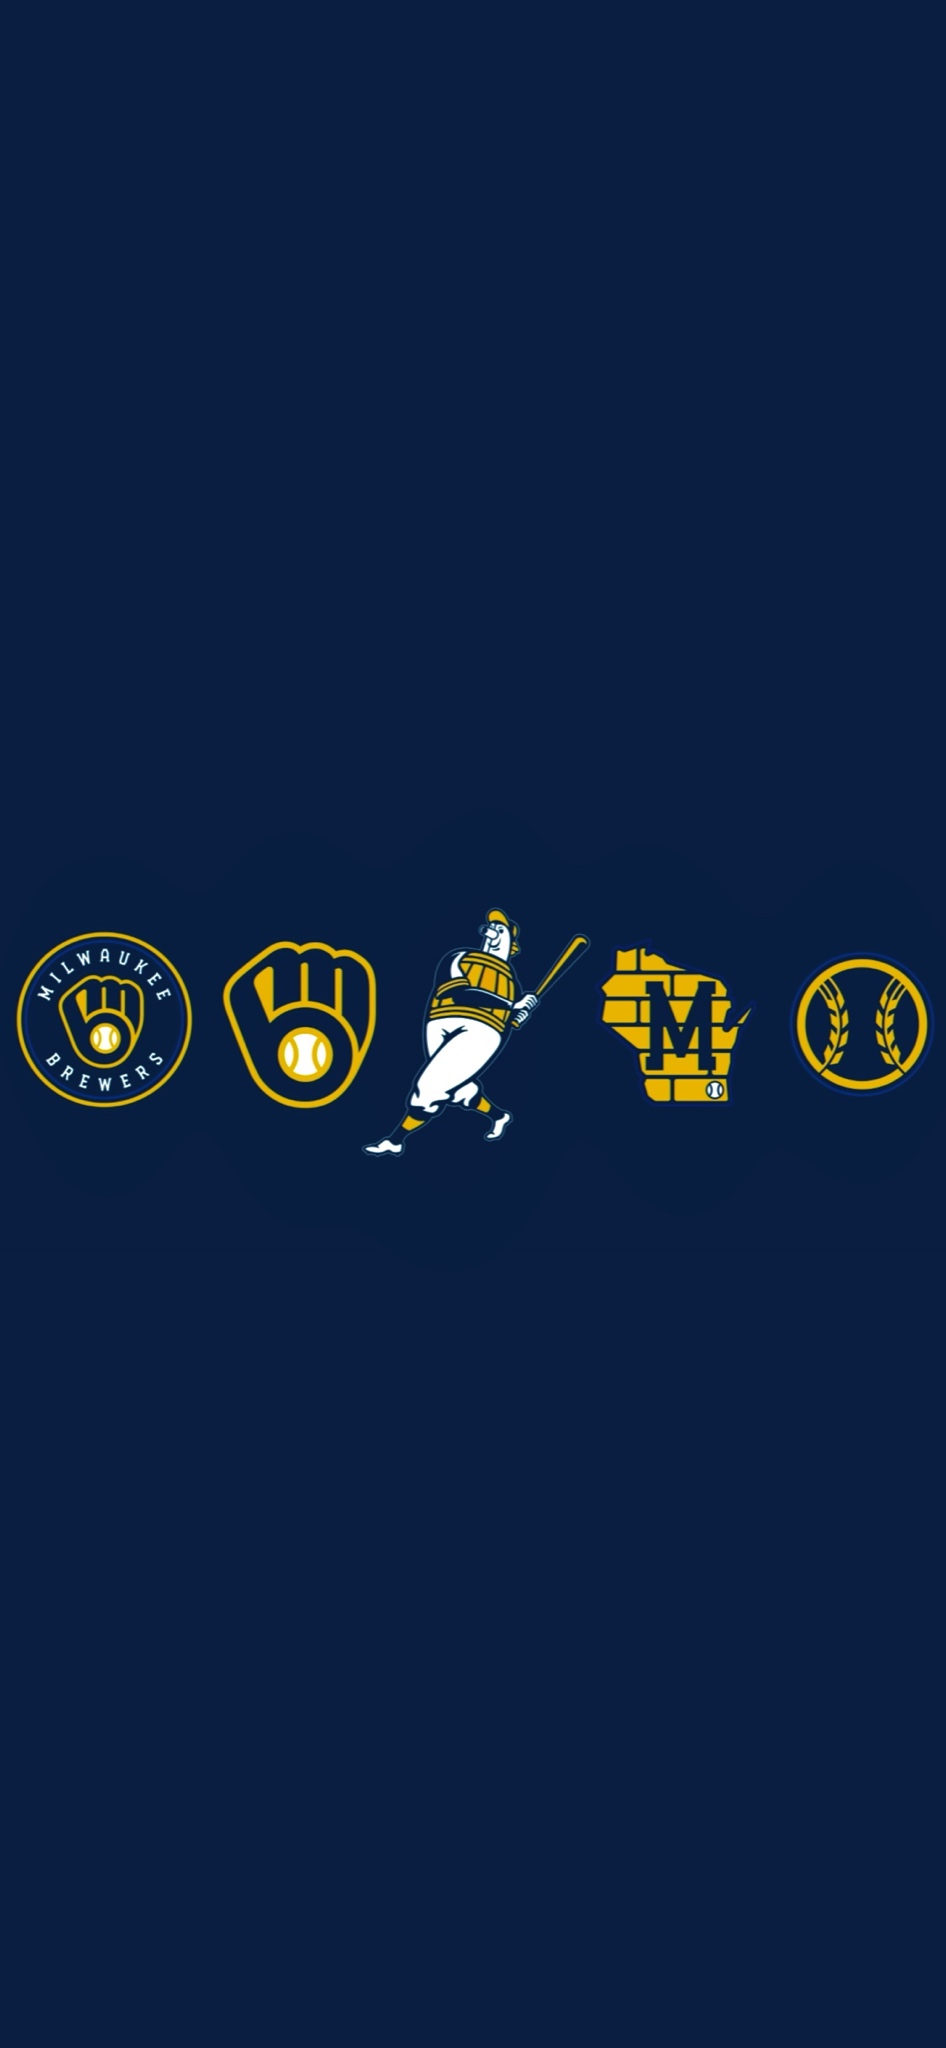 Milwaukee Brewers 2020 new logo wallpapers!.